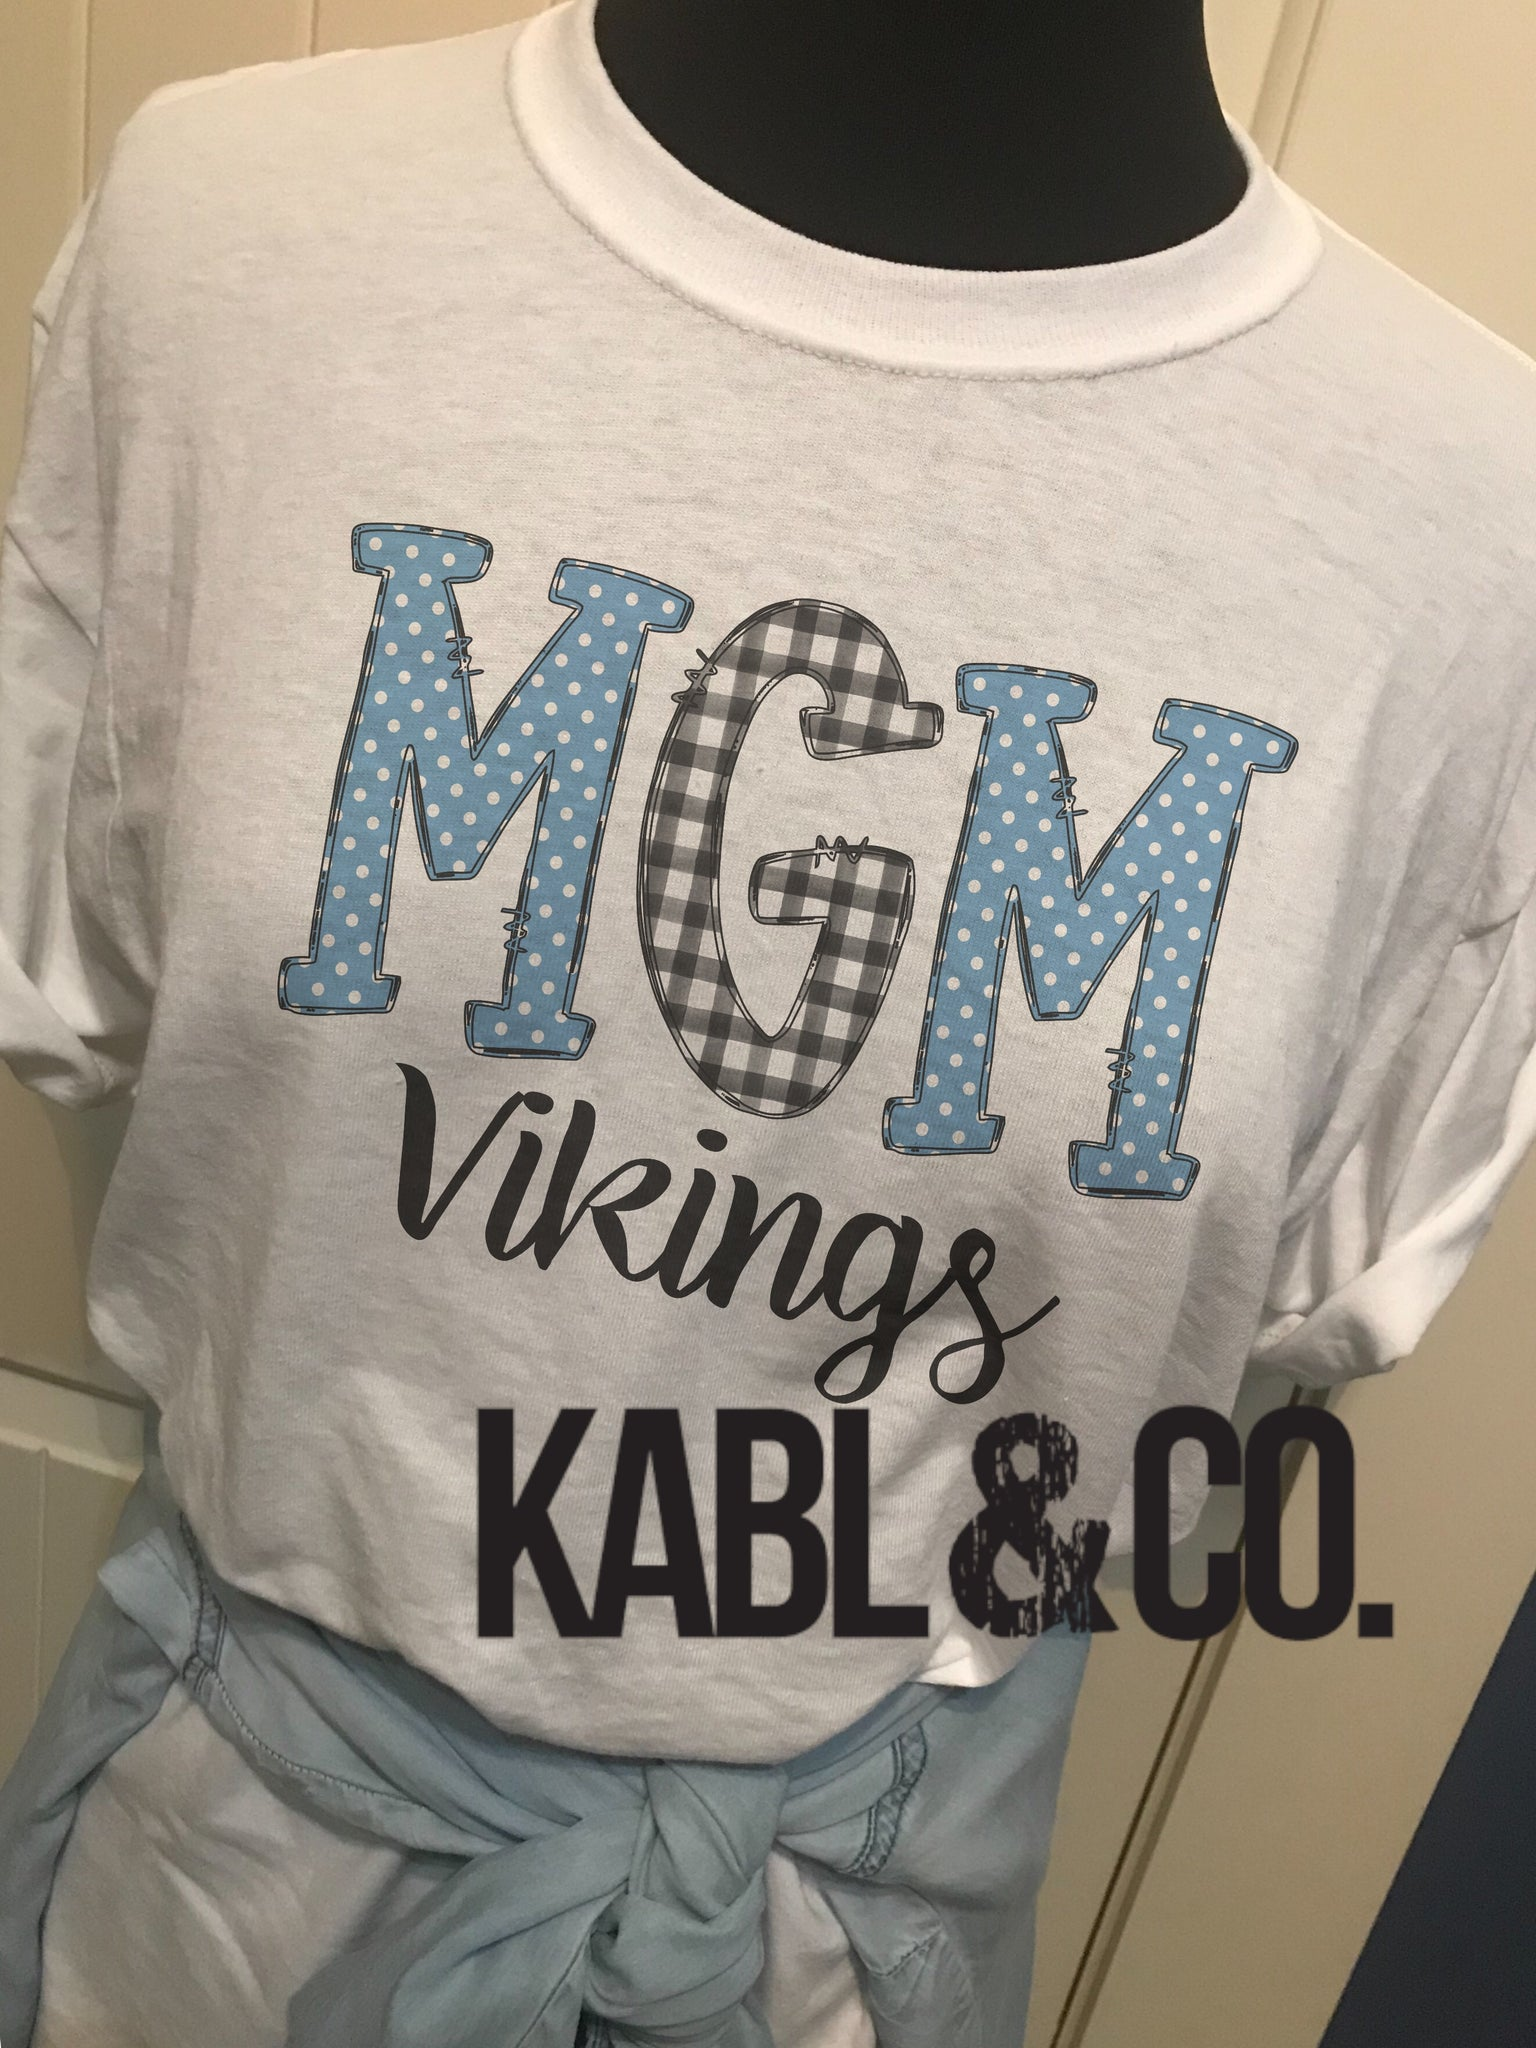 MGM Vikings 1 (white crew)